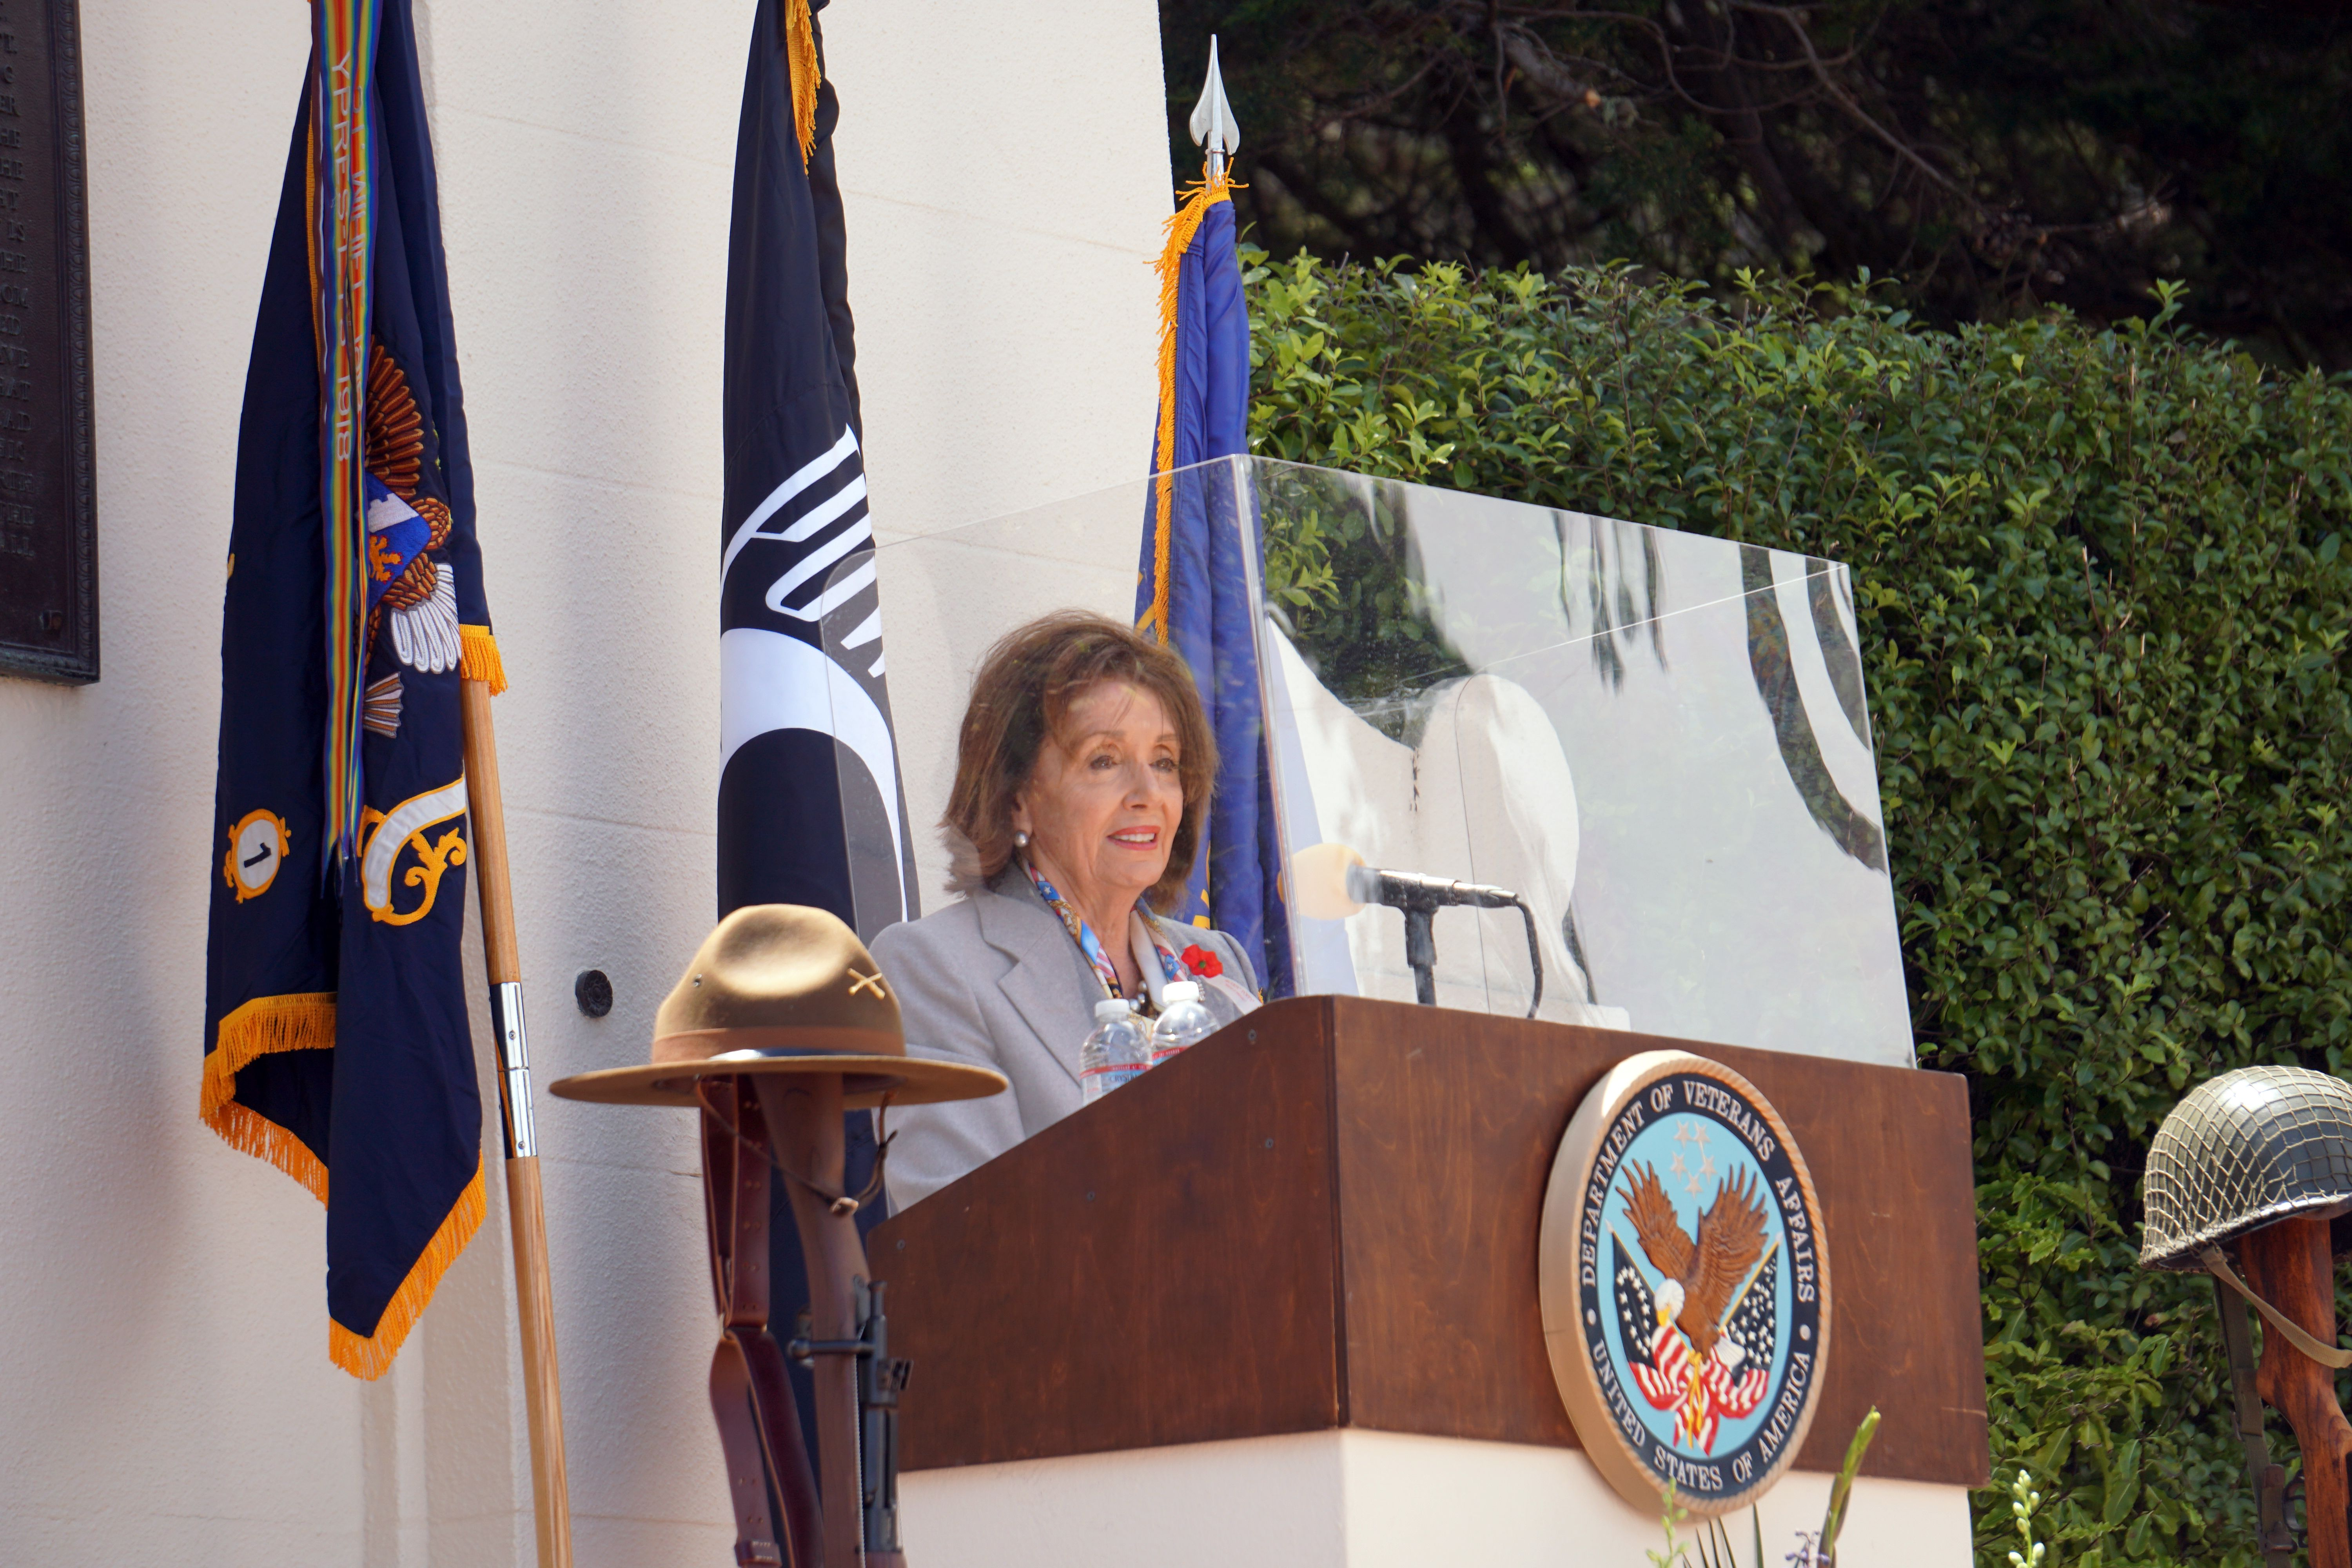 Congresswoman Nancy Pelosi participates in a Memorial Day commemoration at the Presidio National Cemetery with California State Assemblymember David Chiu and San Francisco Mayor London Breed to honor the men and women who sacrificed to keep America safe.